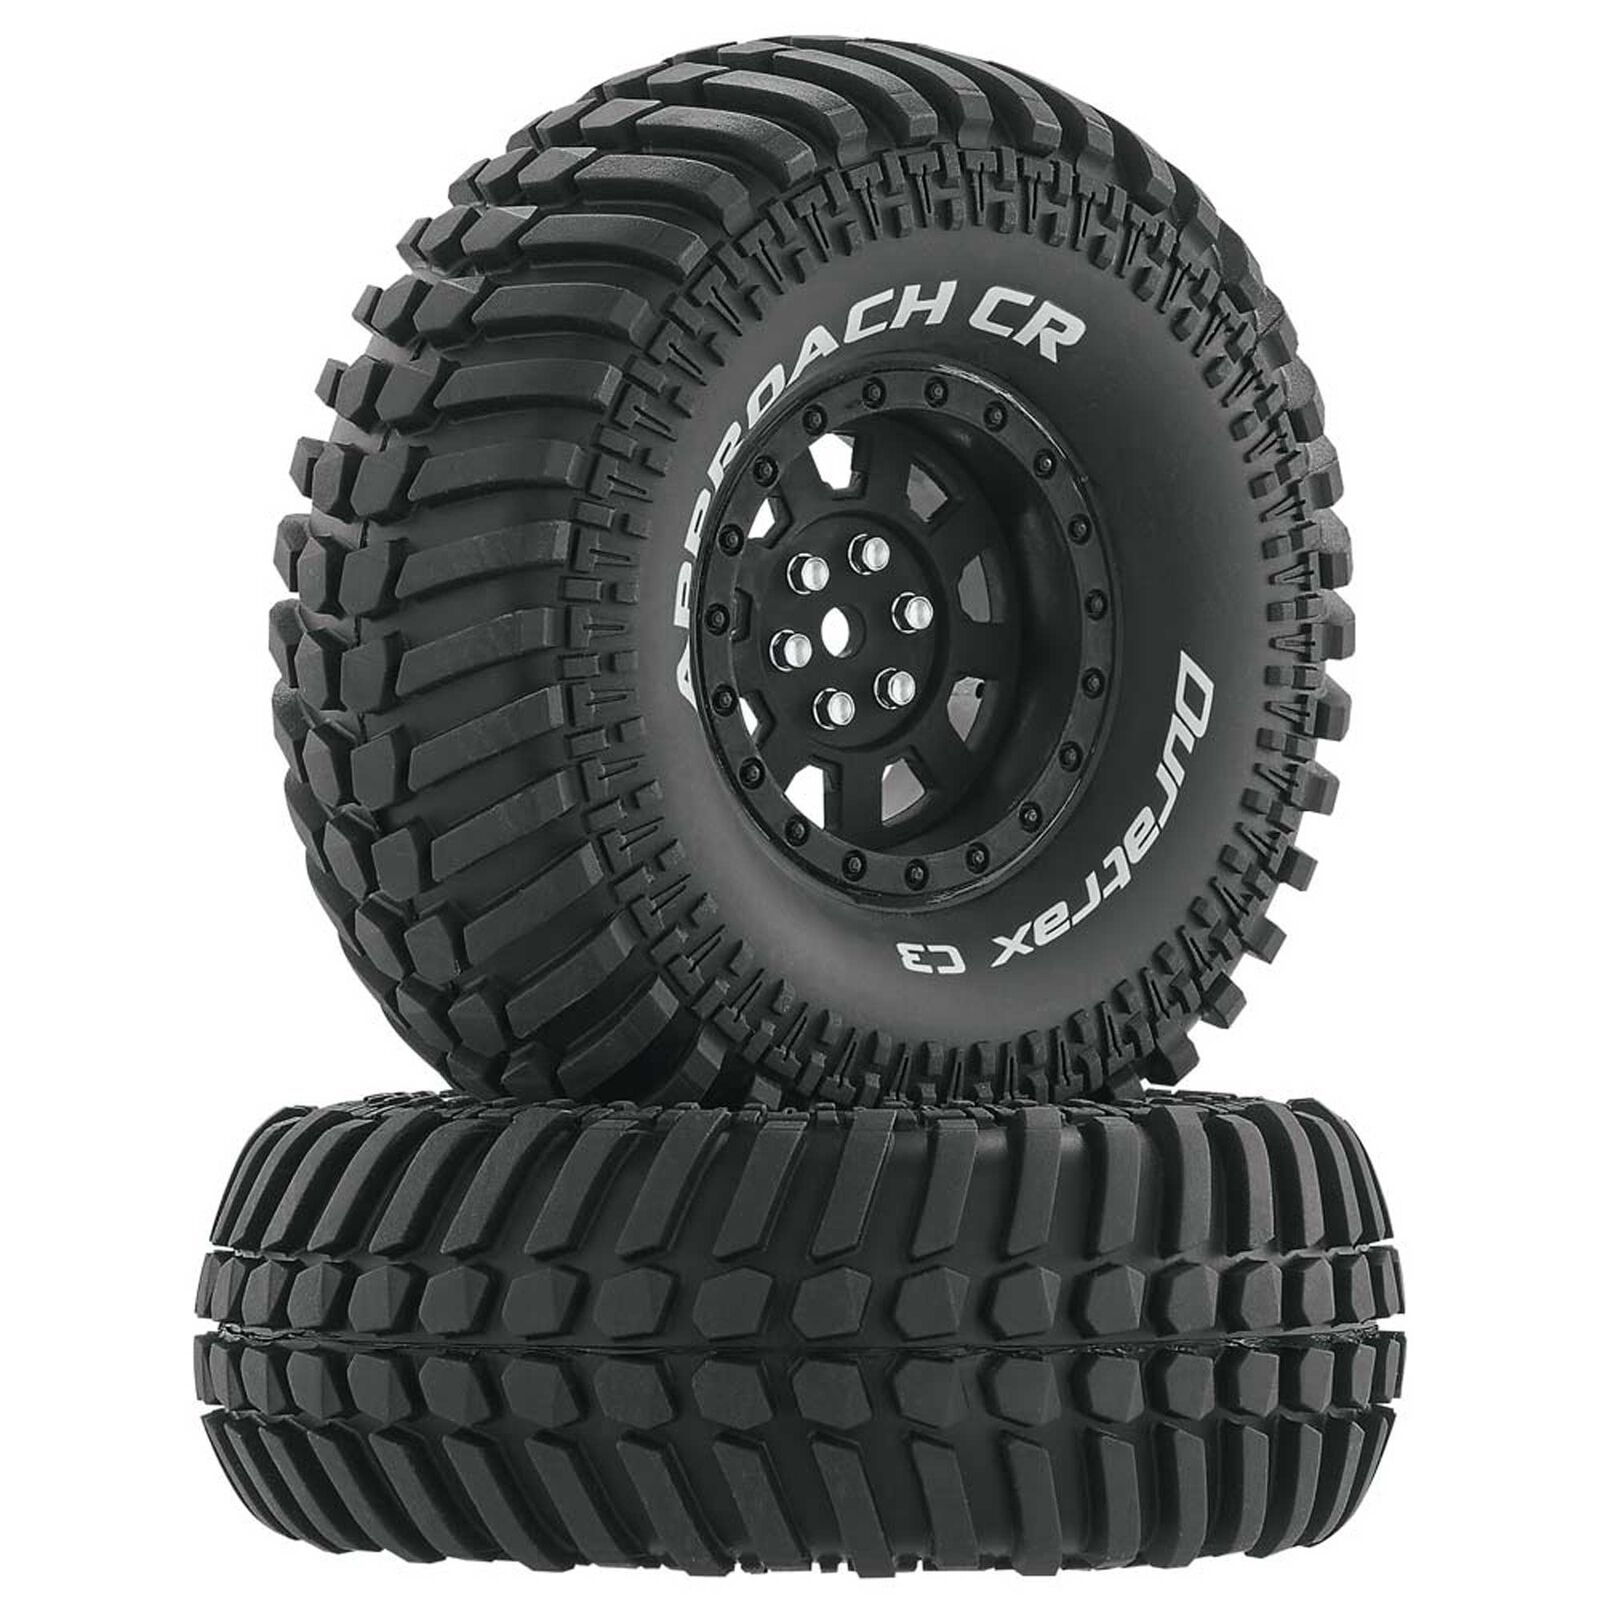 """Approach CR C3 Mounted 1.9""""Crawler Tires, Black (2)"""